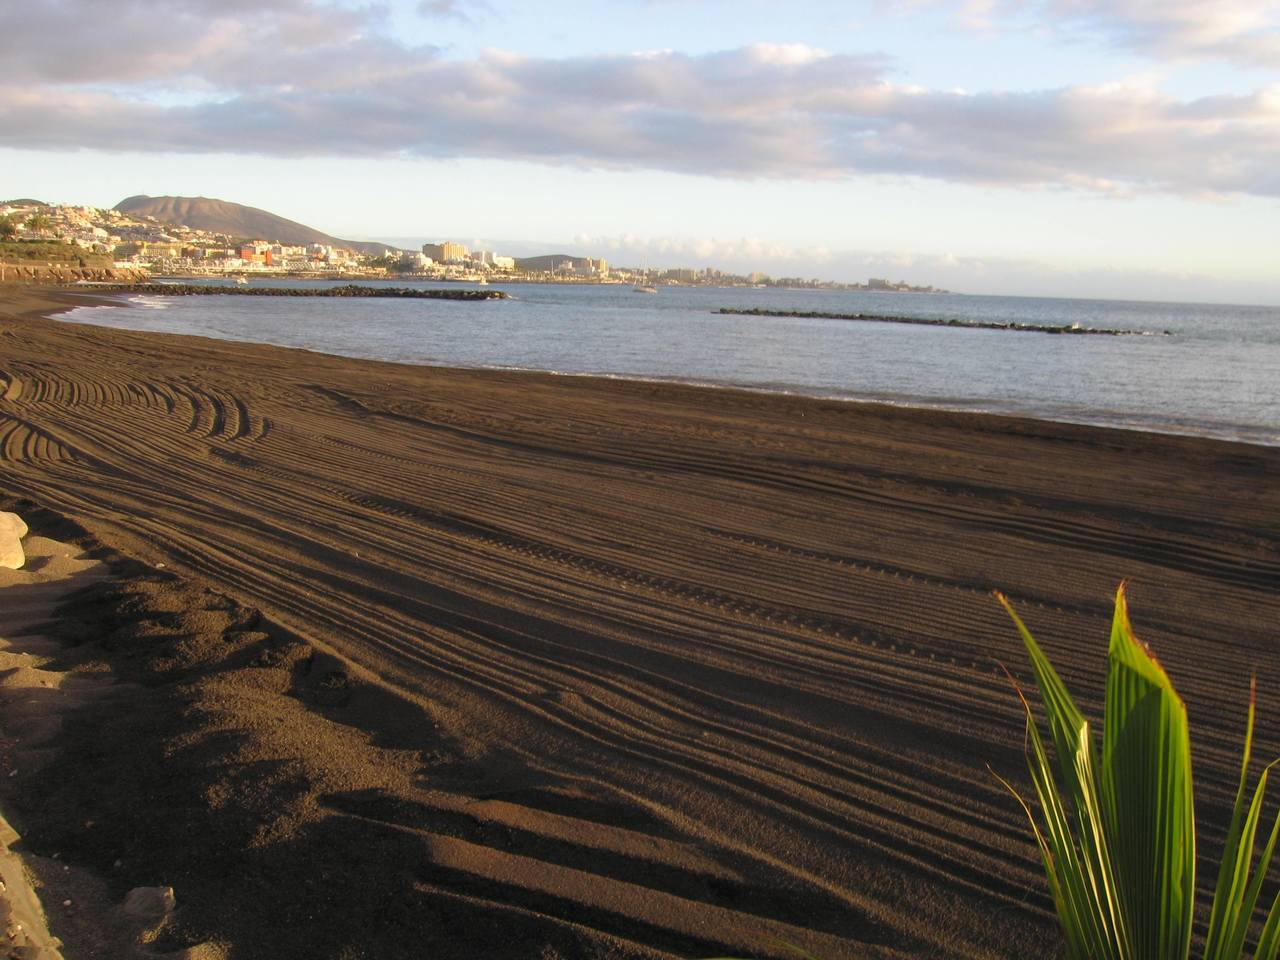 El Beril new beach in Costa Adeje (Tenerife) will be inaugurated April 23, 2018